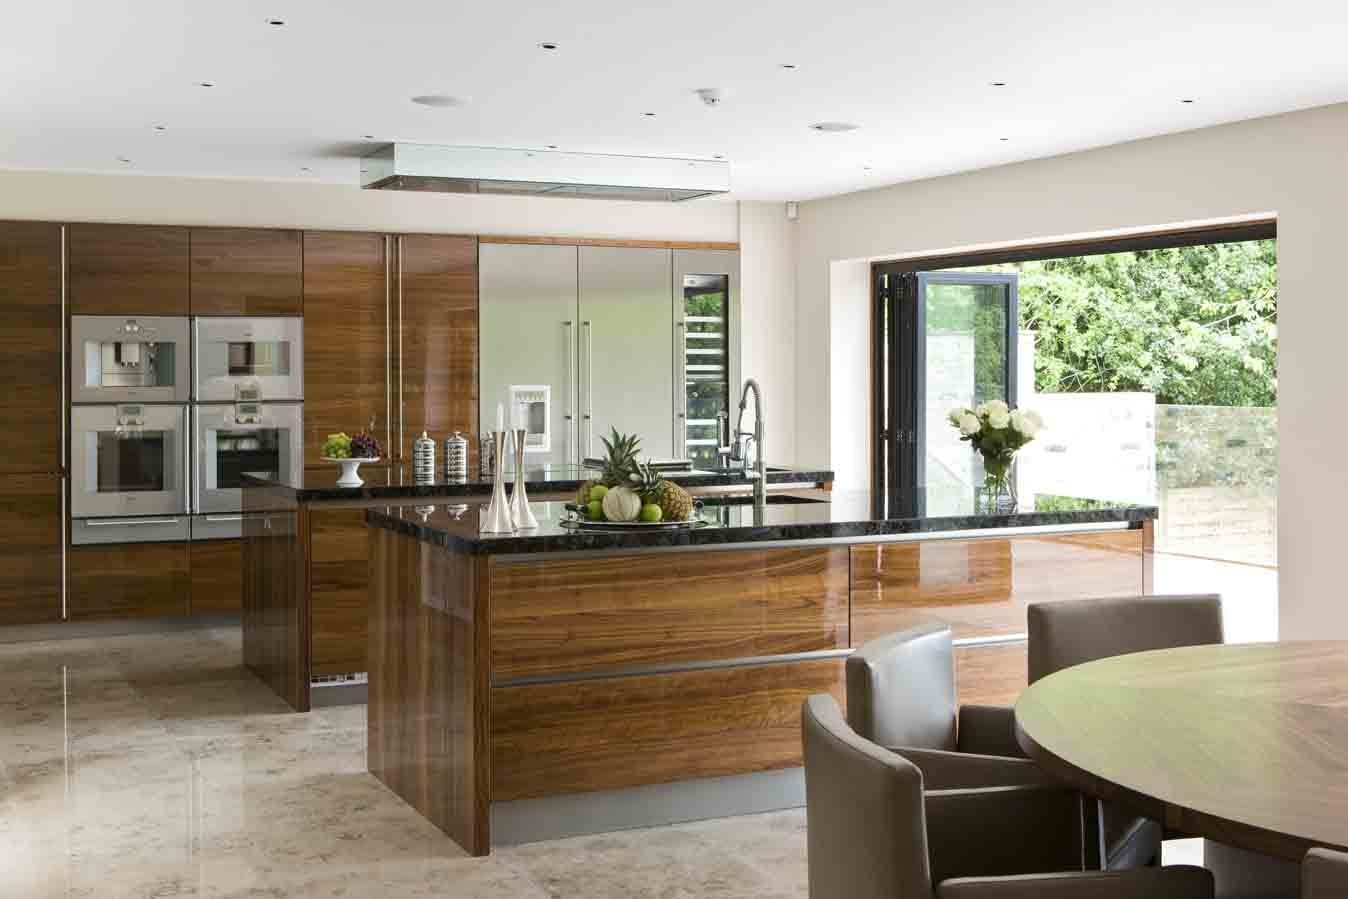 What Is Keeping A Kosher Kitchen Home Decor Photos Gallery